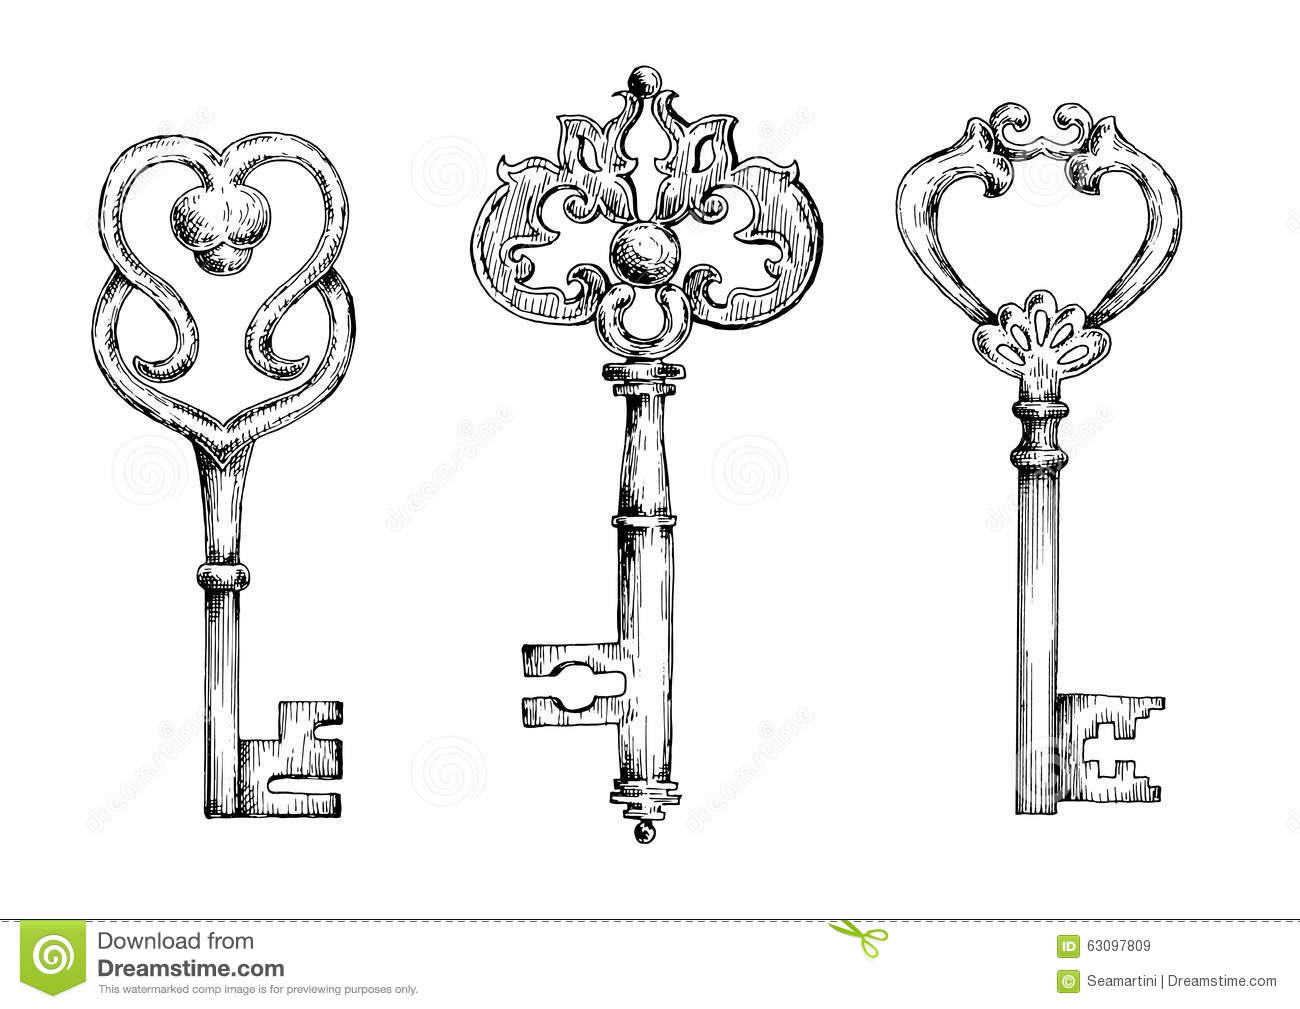 antique skeleton key drawing wiring diagram database. Black Bedroom Furniture Sets. Home Design Ideas